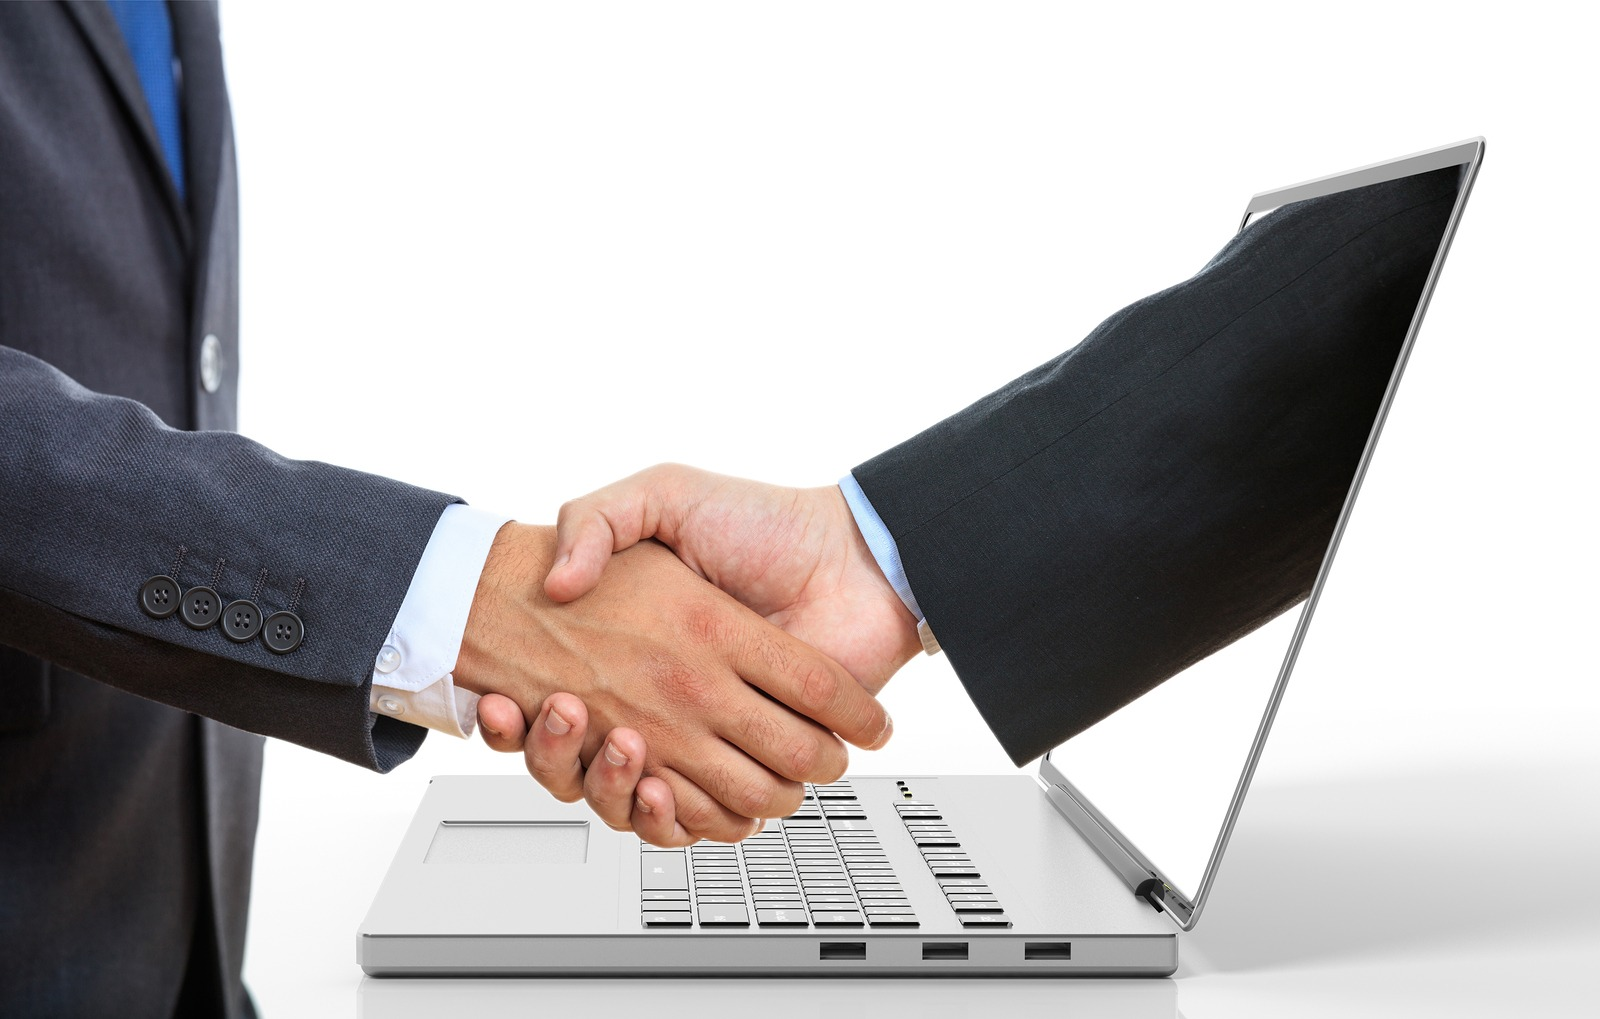 Online Lending and It's Impact on Small Business